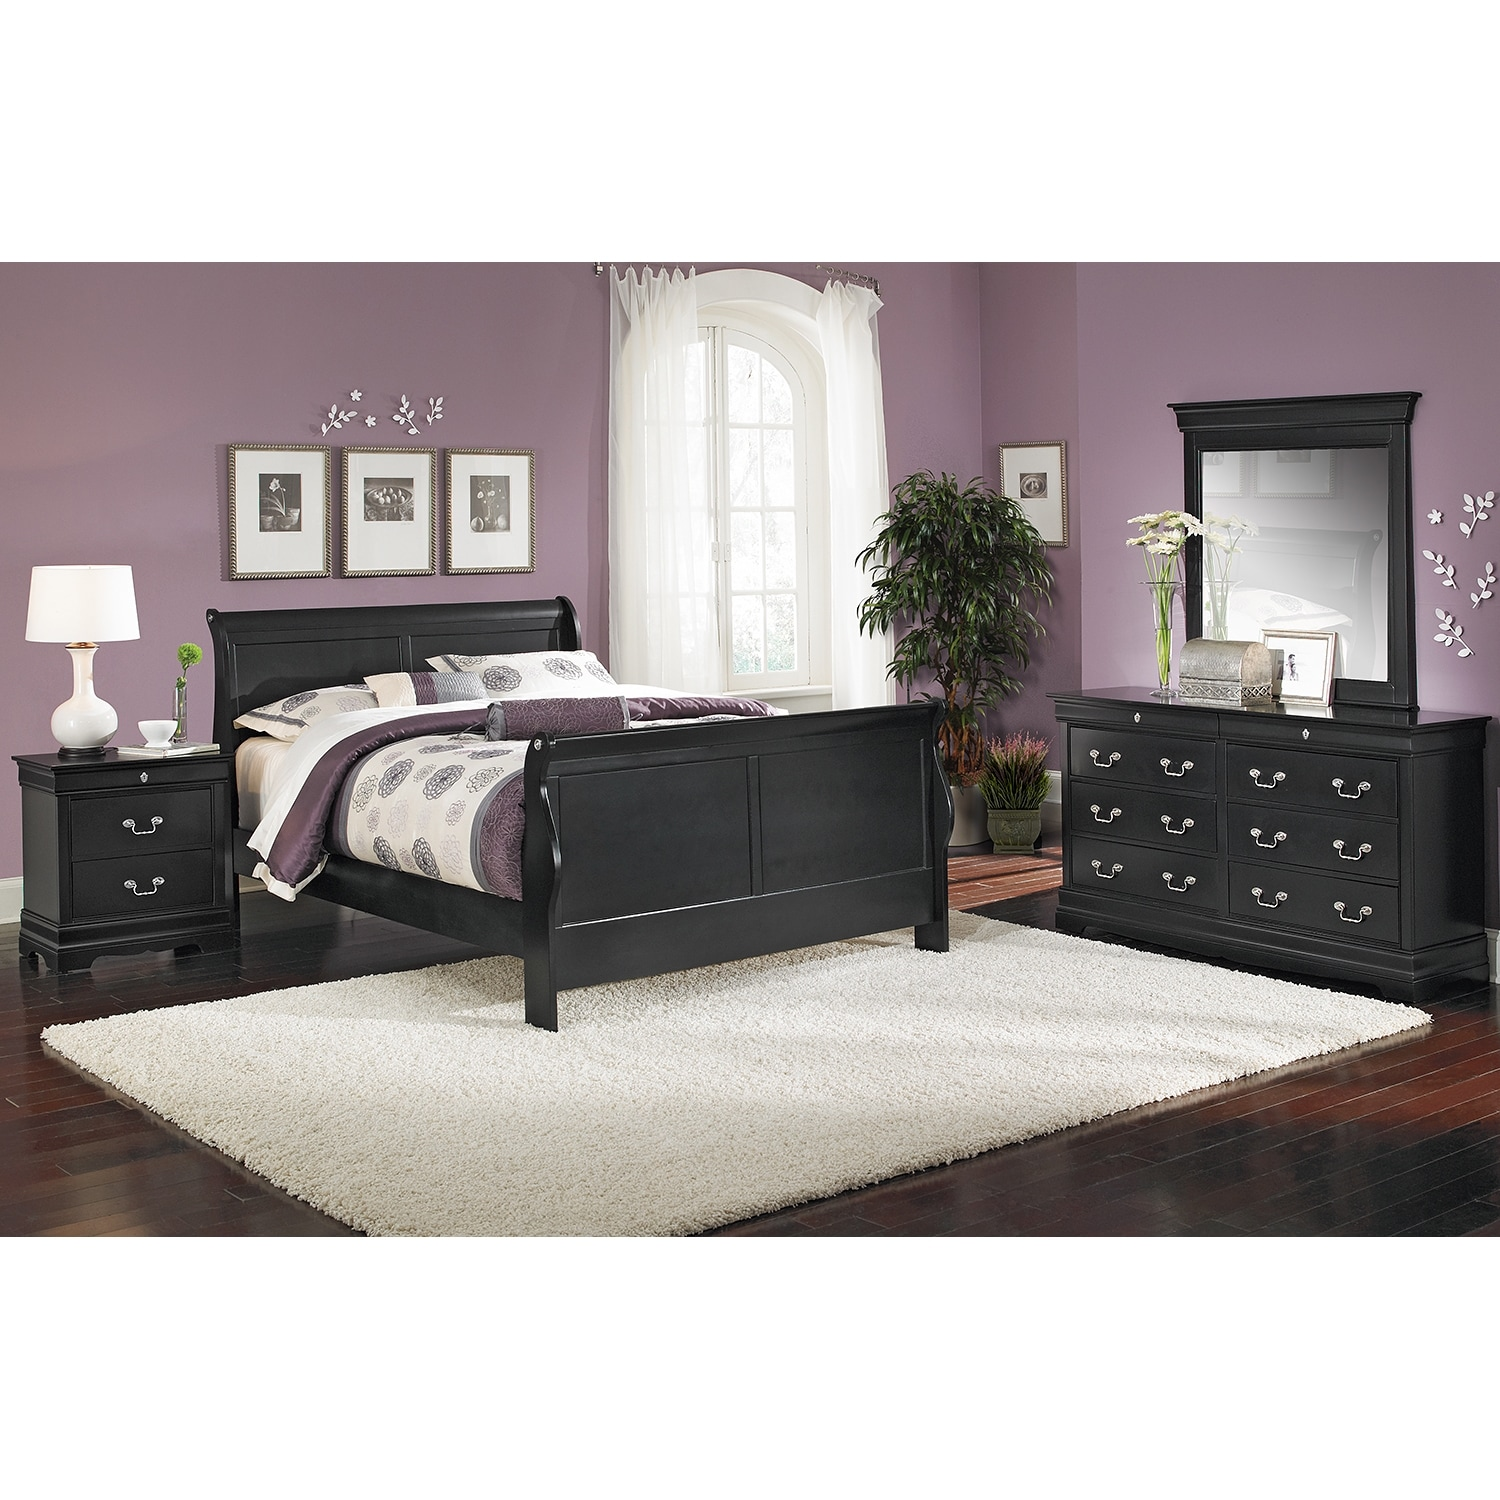 Neo Classic 6-Piece Queen Bedroom Set - Black